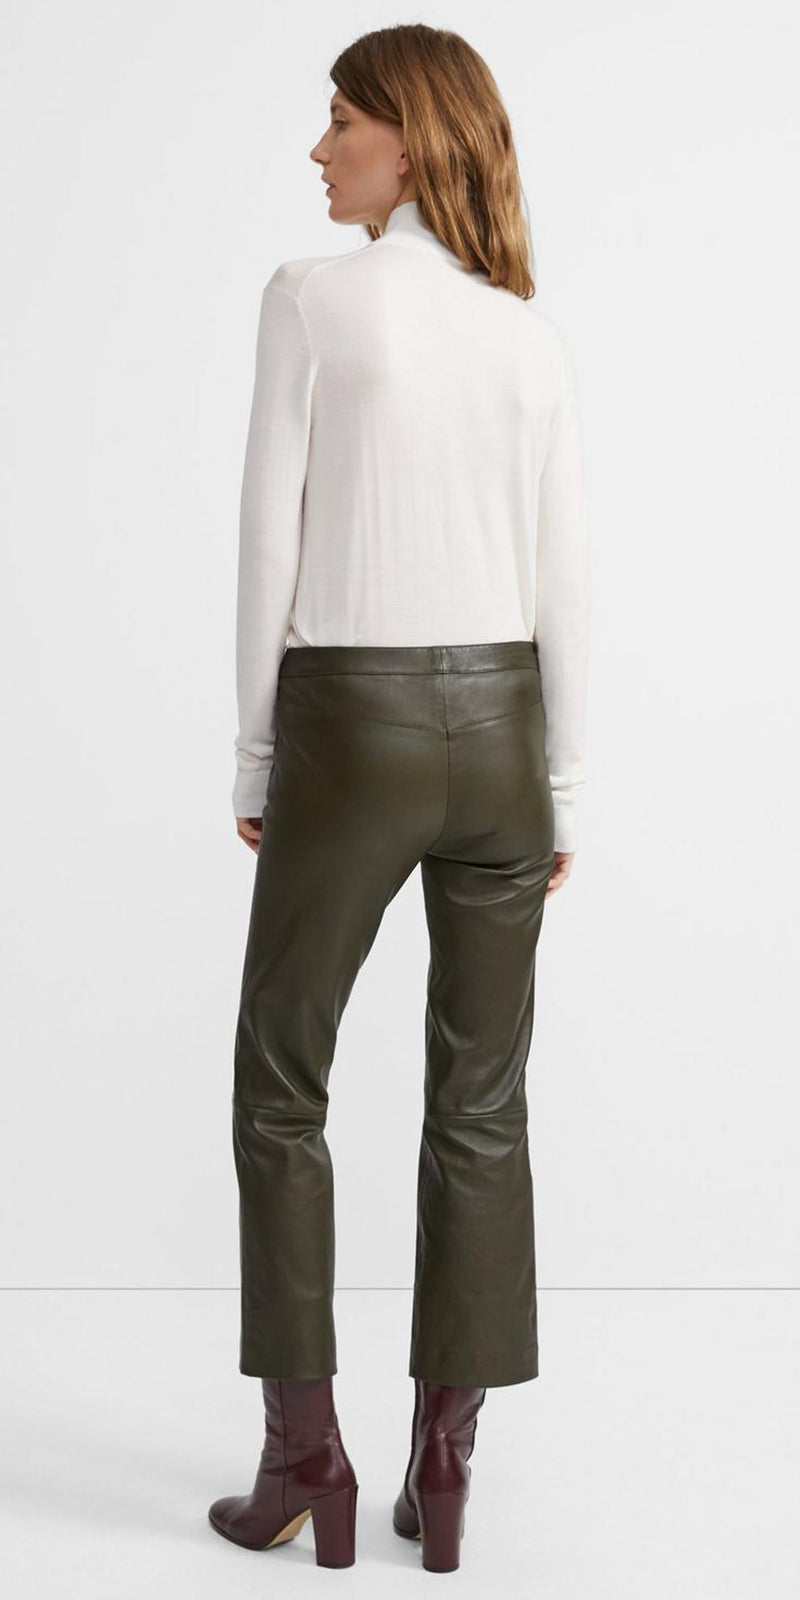 THEORY CROP LEATHER PANTS IN SLATE GREEN